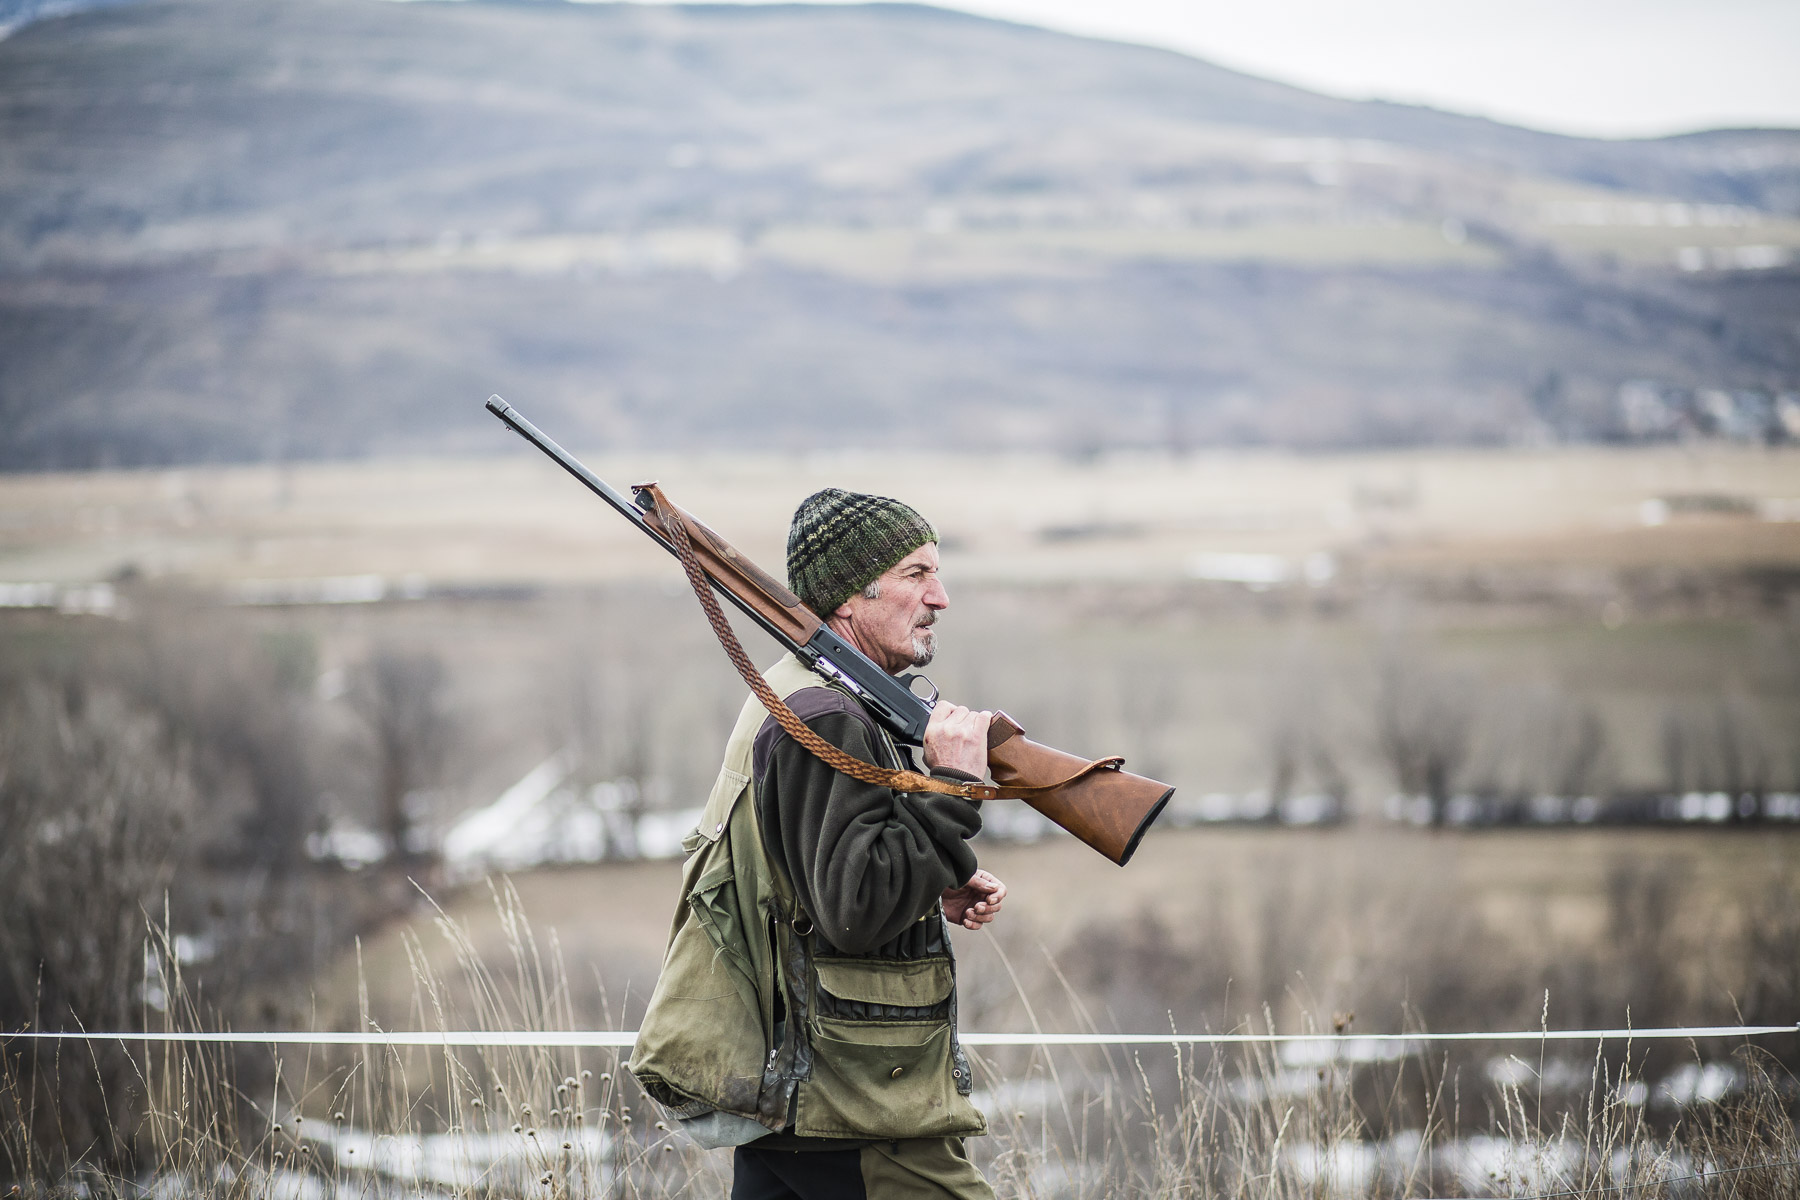 1dog-lifestyle-photographer-hunter-dogs-fetching-pheasants-nature-outdoors-bloodhounts-.jpg